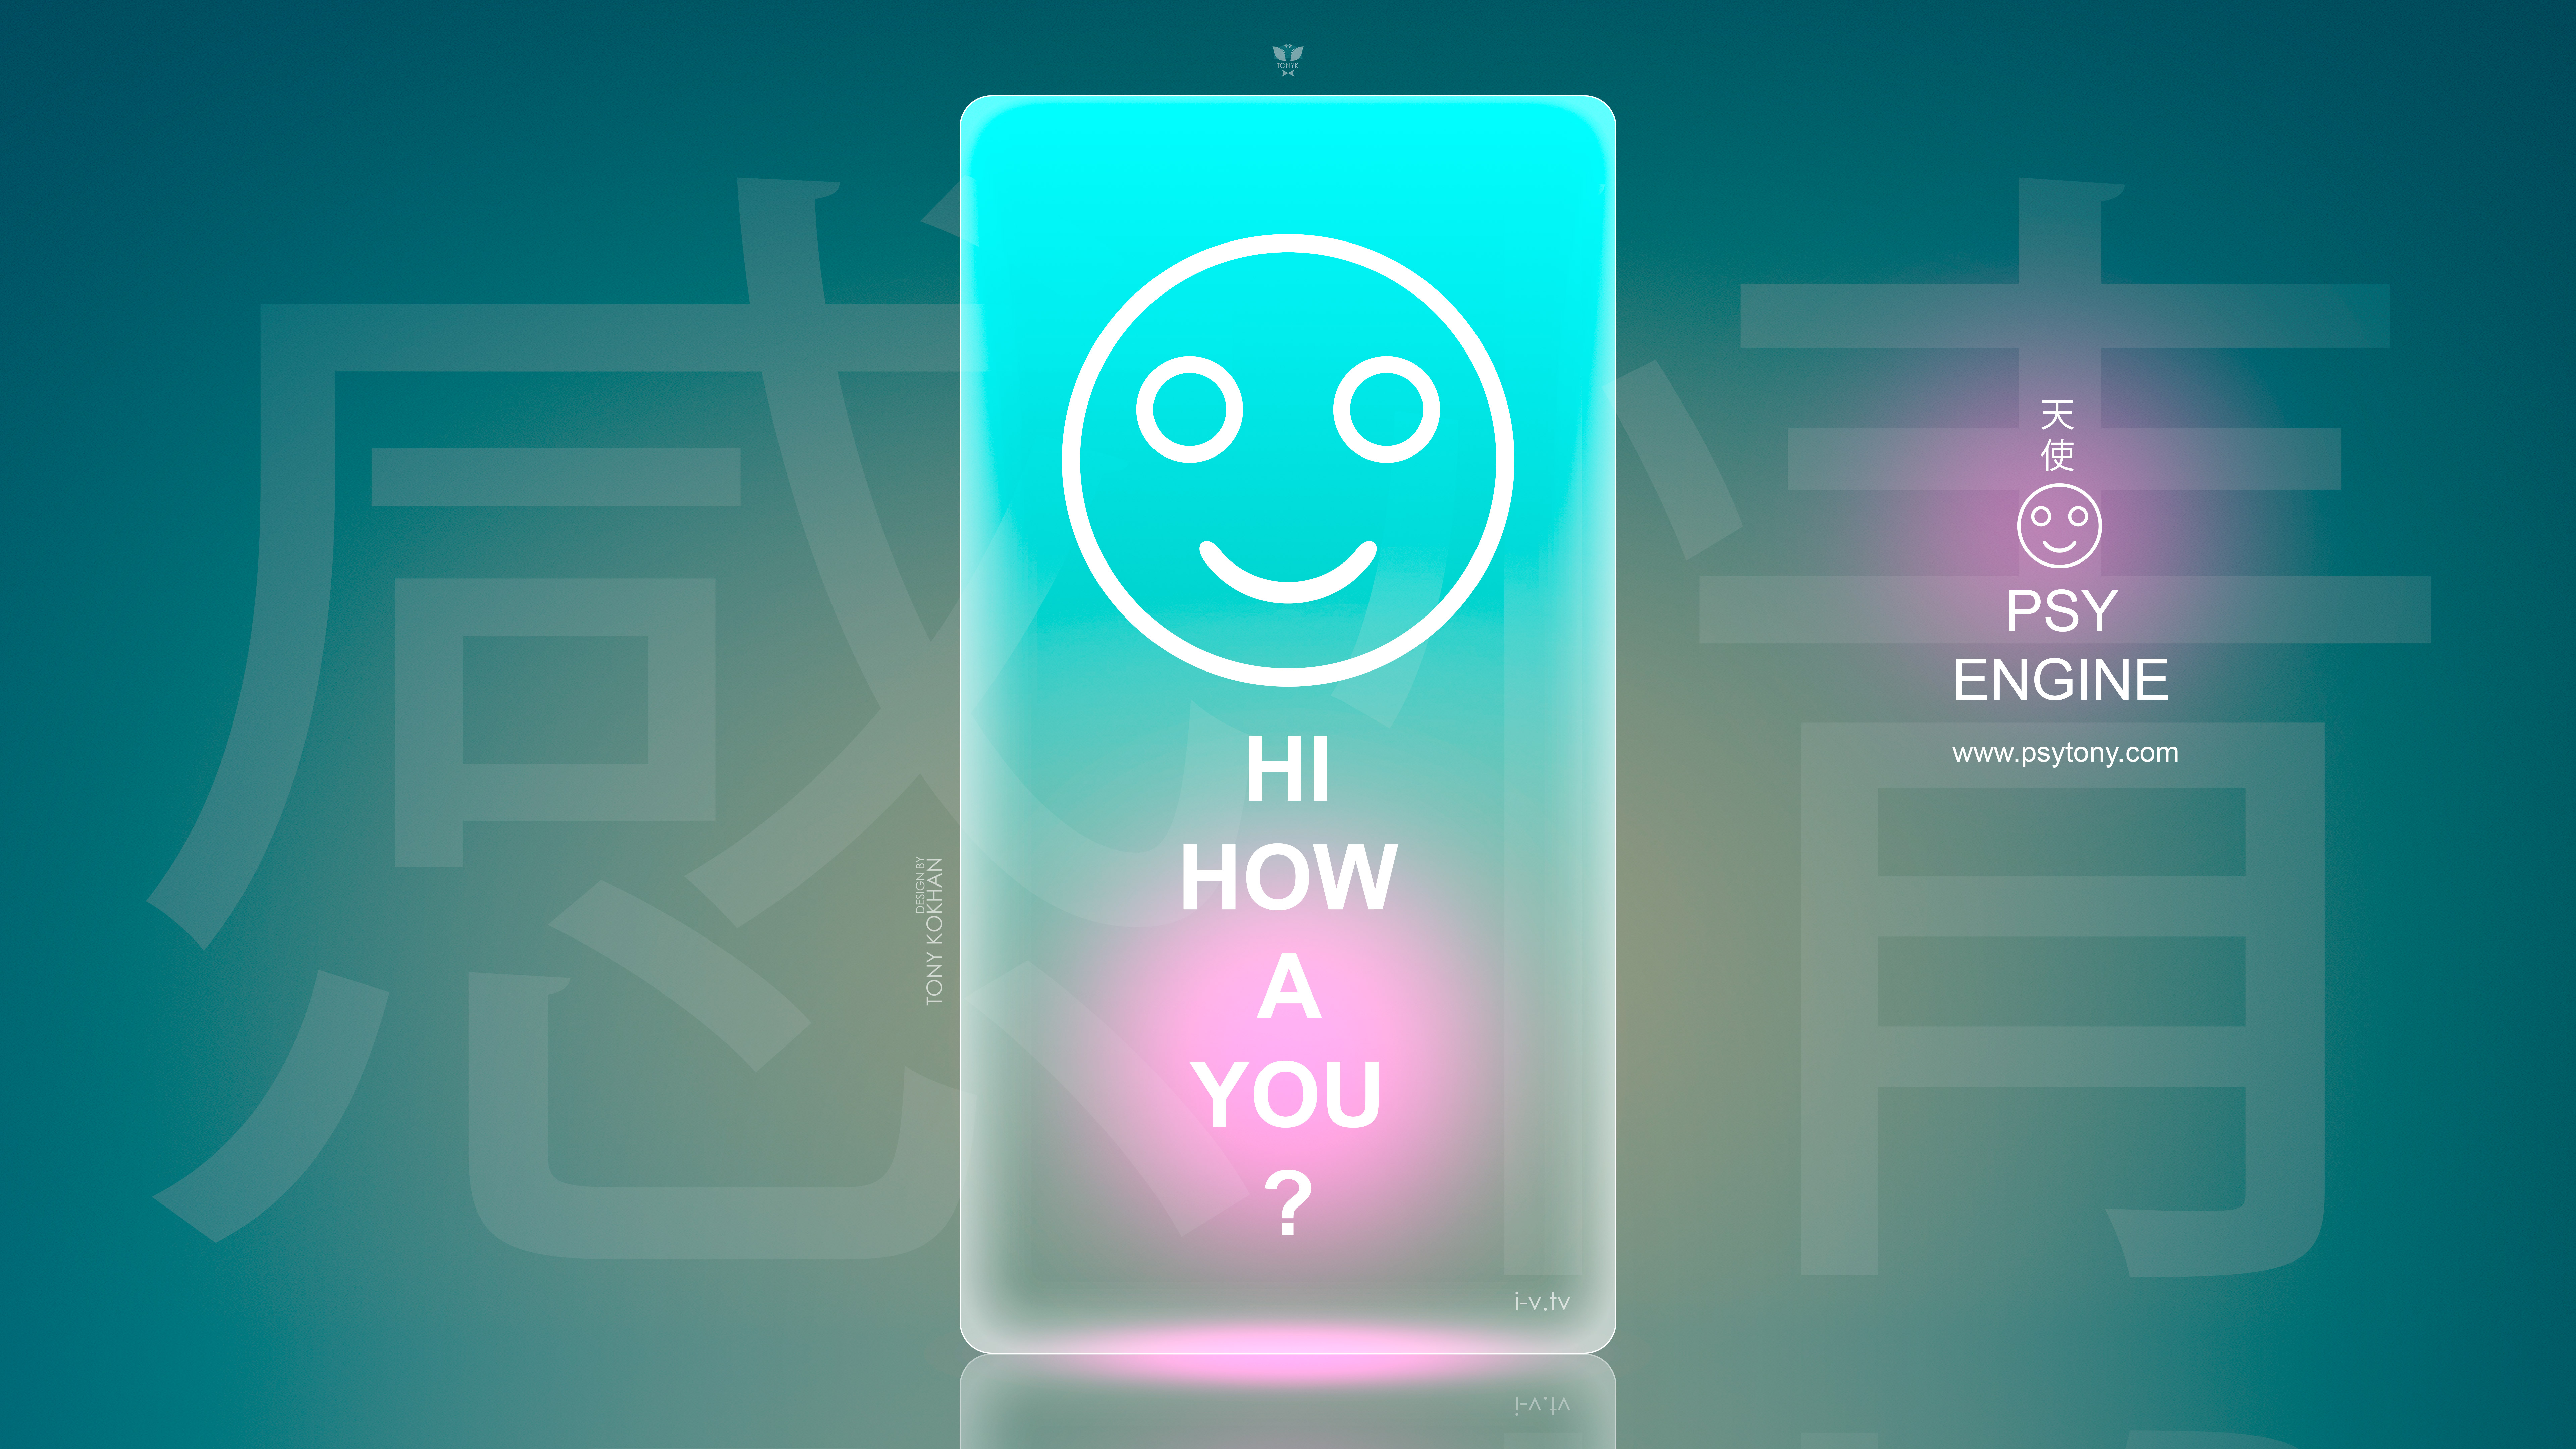 HI-HOW-ARE-YOU-Psy-Engine-Smile-Logo-Emotions-Question-Phone-Case-PsyTony-www.psytony.com-Psychology-2019-Multicolors-8K-Wallpapers-design-by-Tony-Kokhan-www.i-v.tv-image